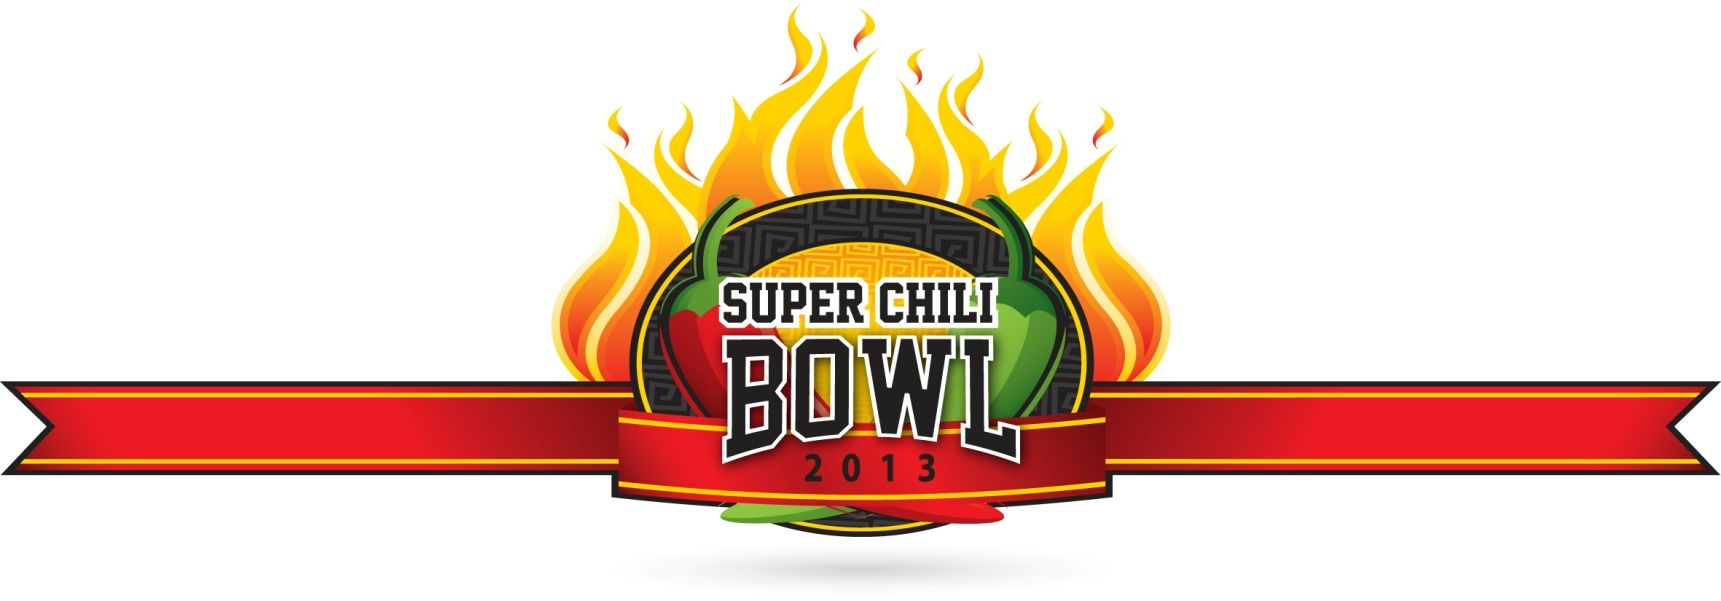 Super Chili Bowl Today In Trussville